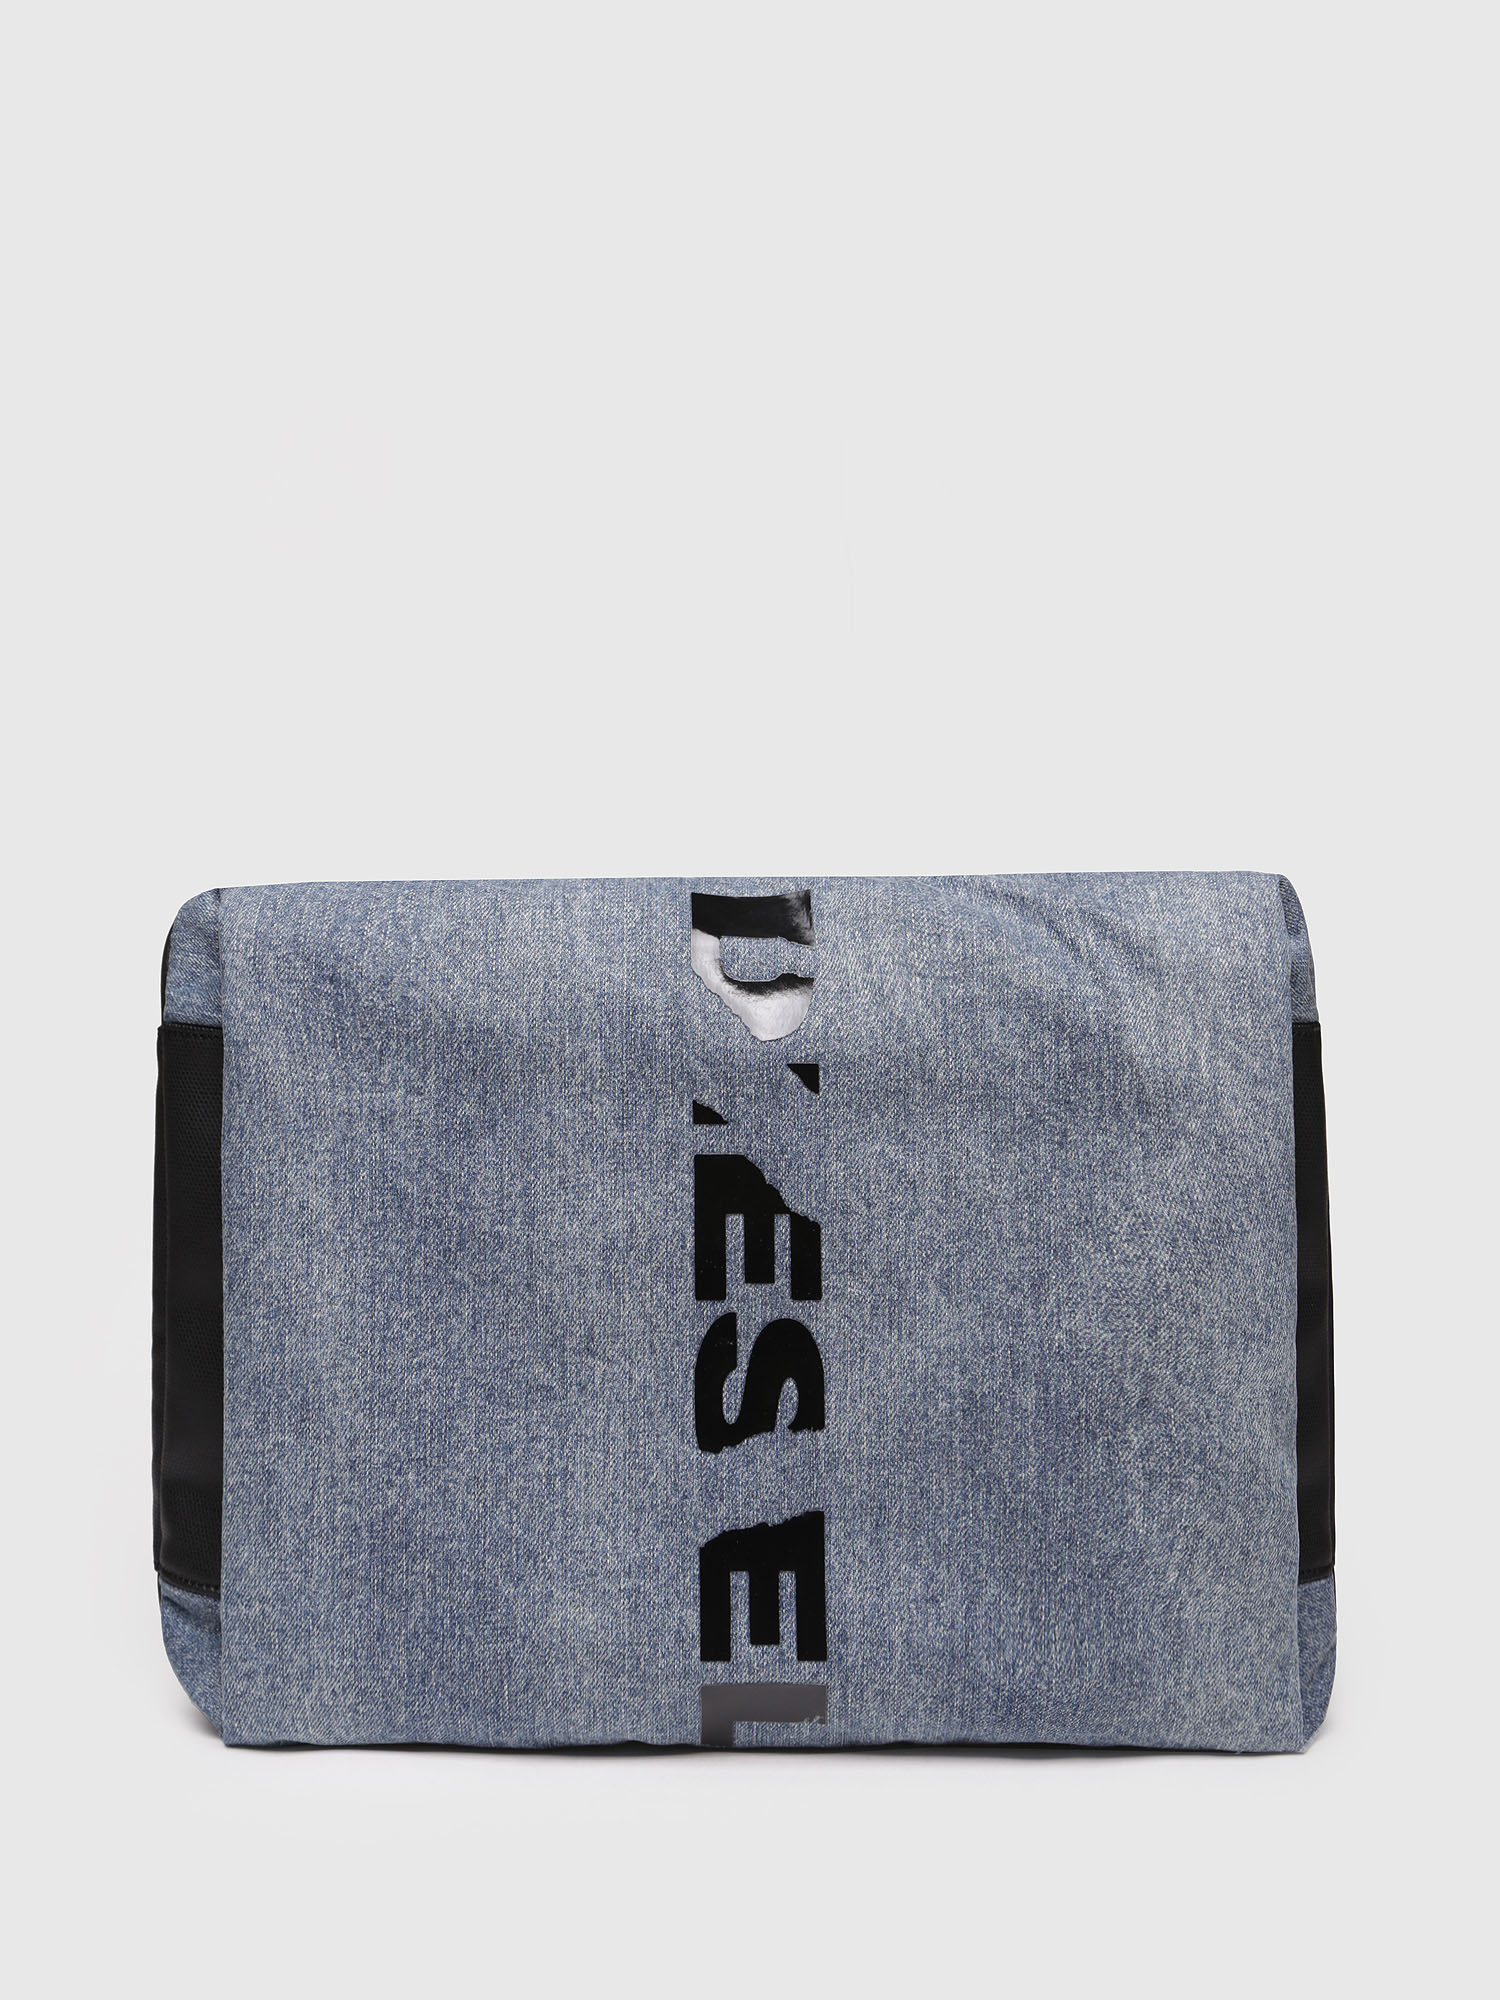 Diesel - D-SUBTORYAL CLUTCH,  - Clutches - Image 1